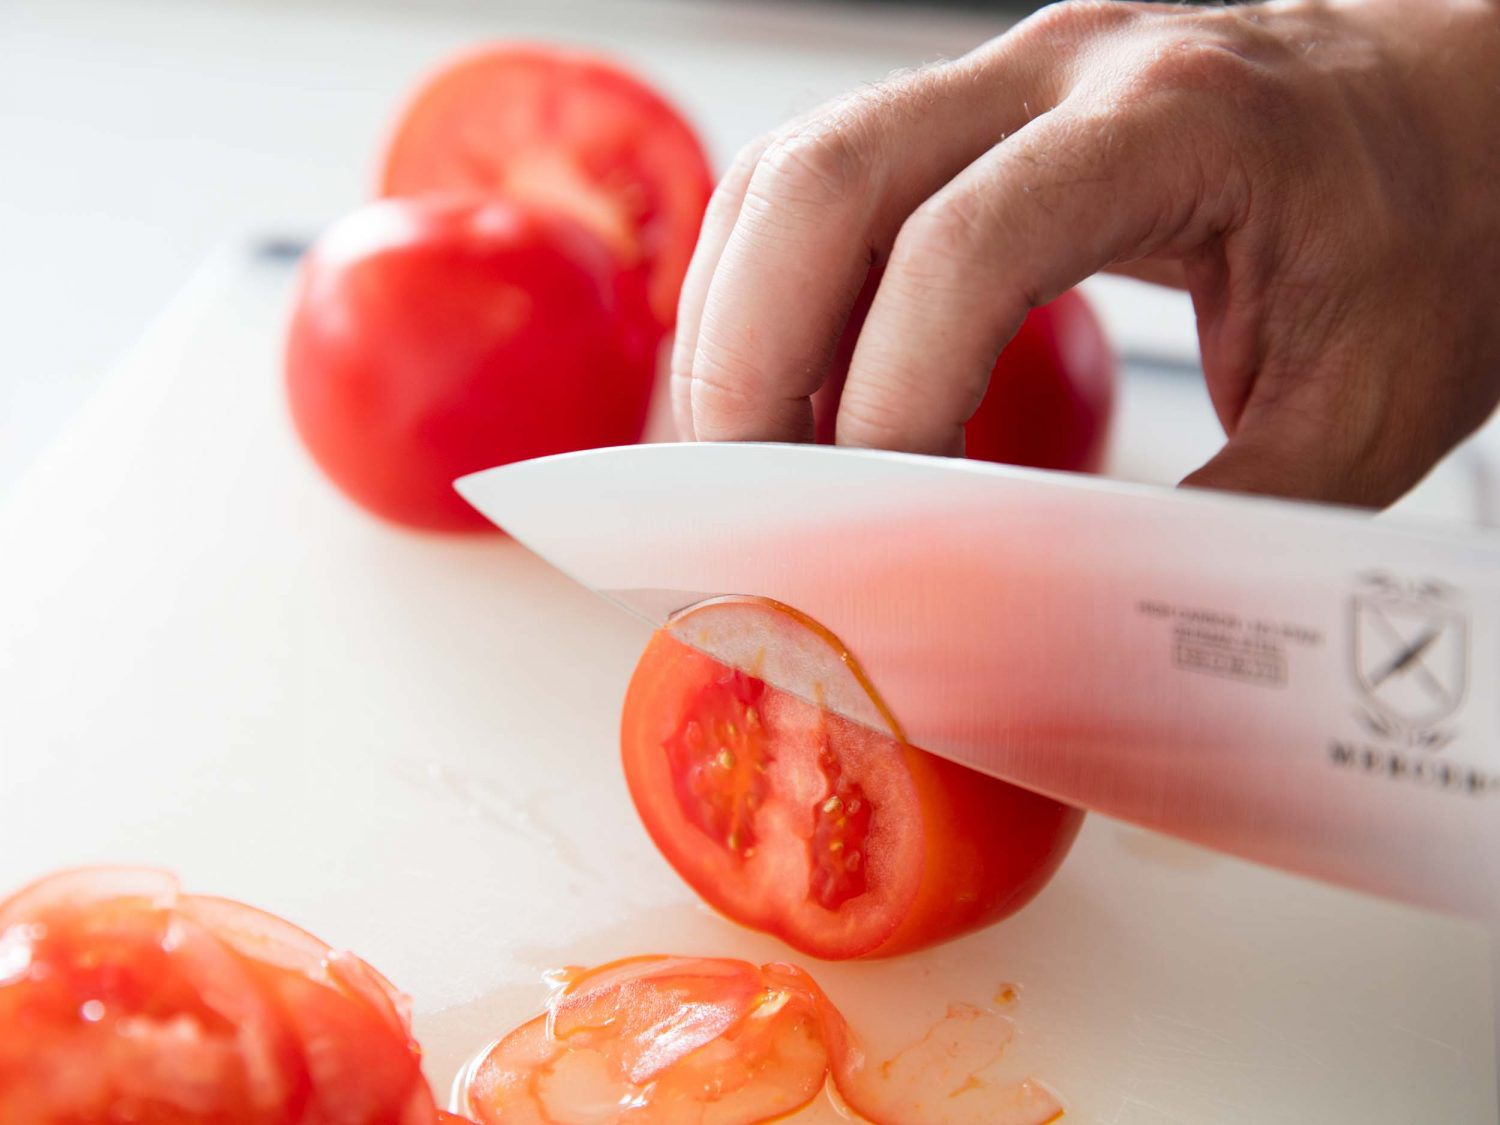 A chef's knife slicing through ripe tomatoes